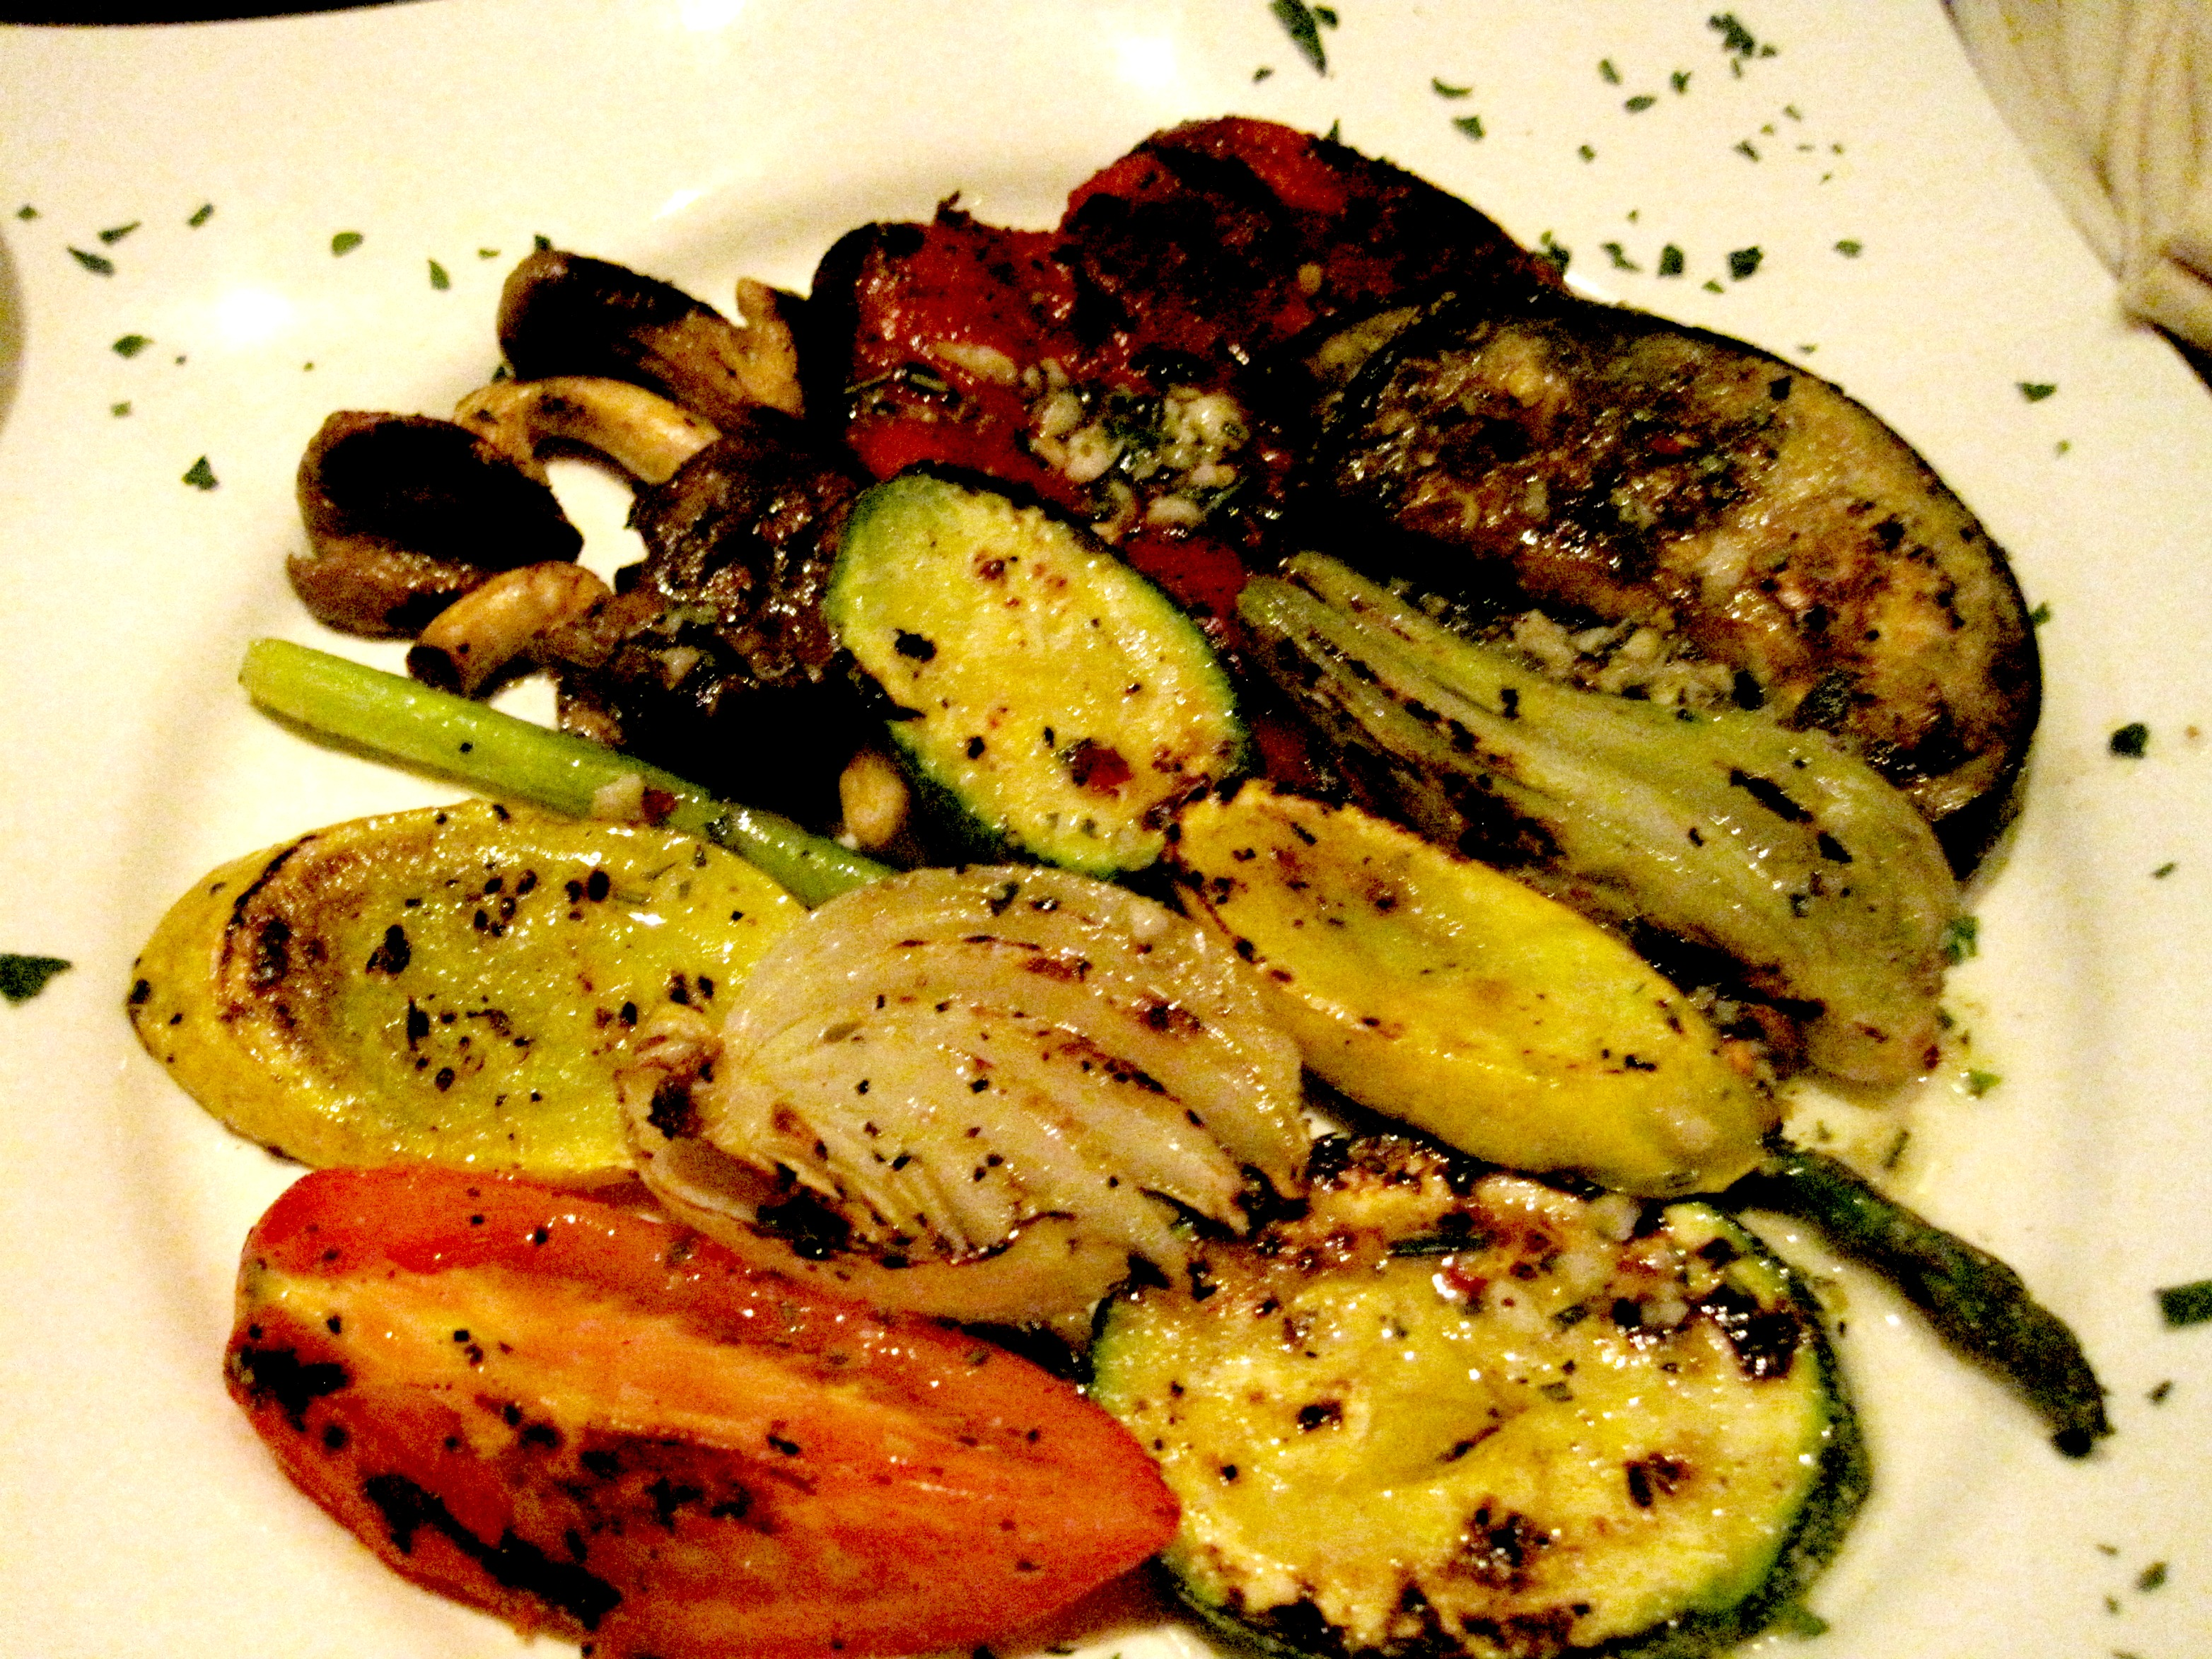 grilledvegetab les_wineandtapas